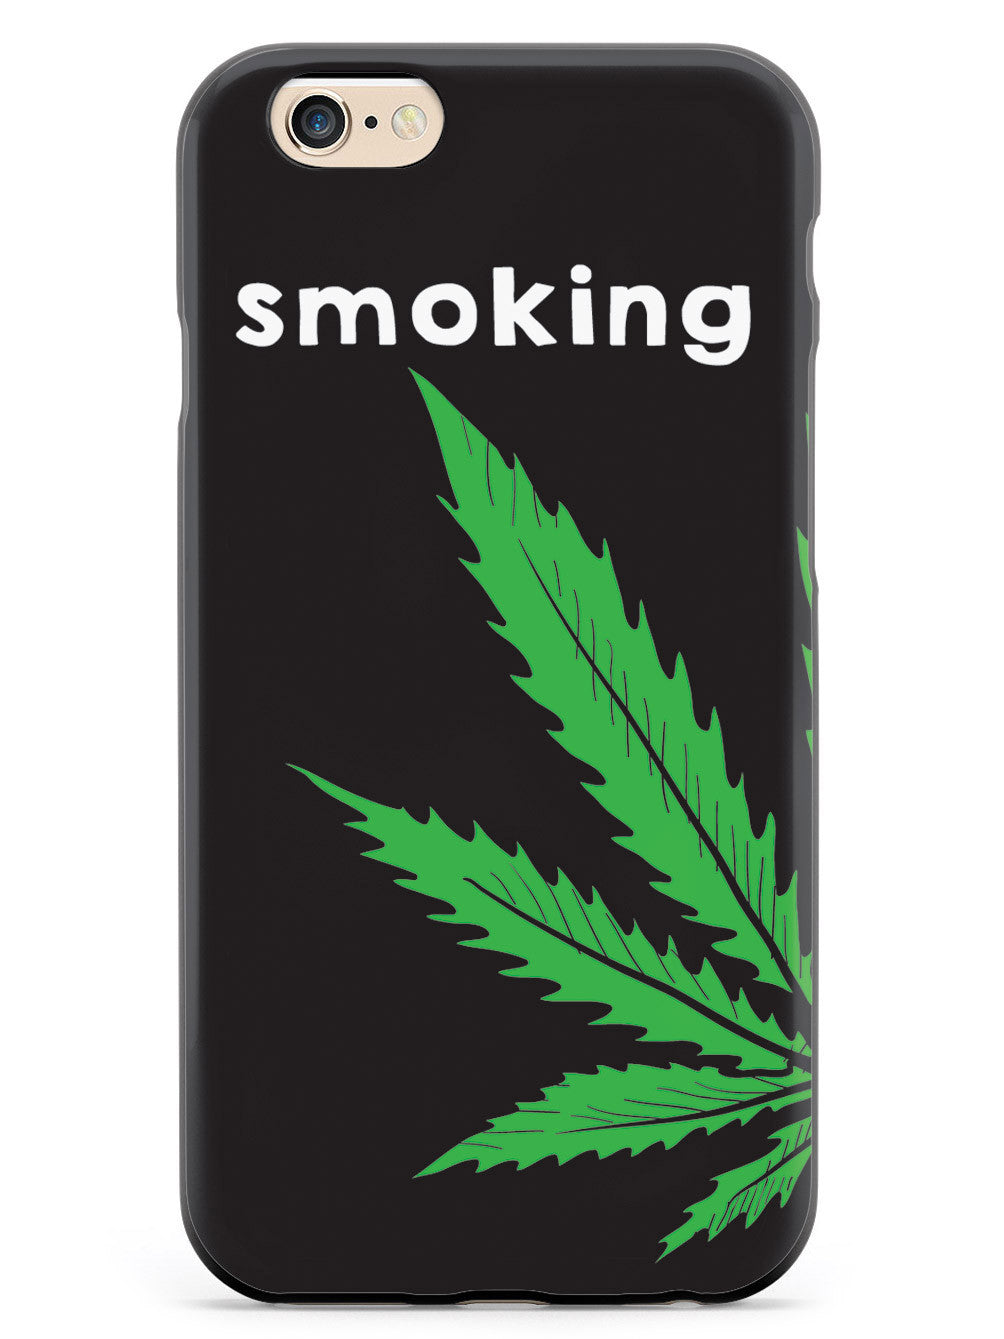 SMOKING Buddies - Smoking Case